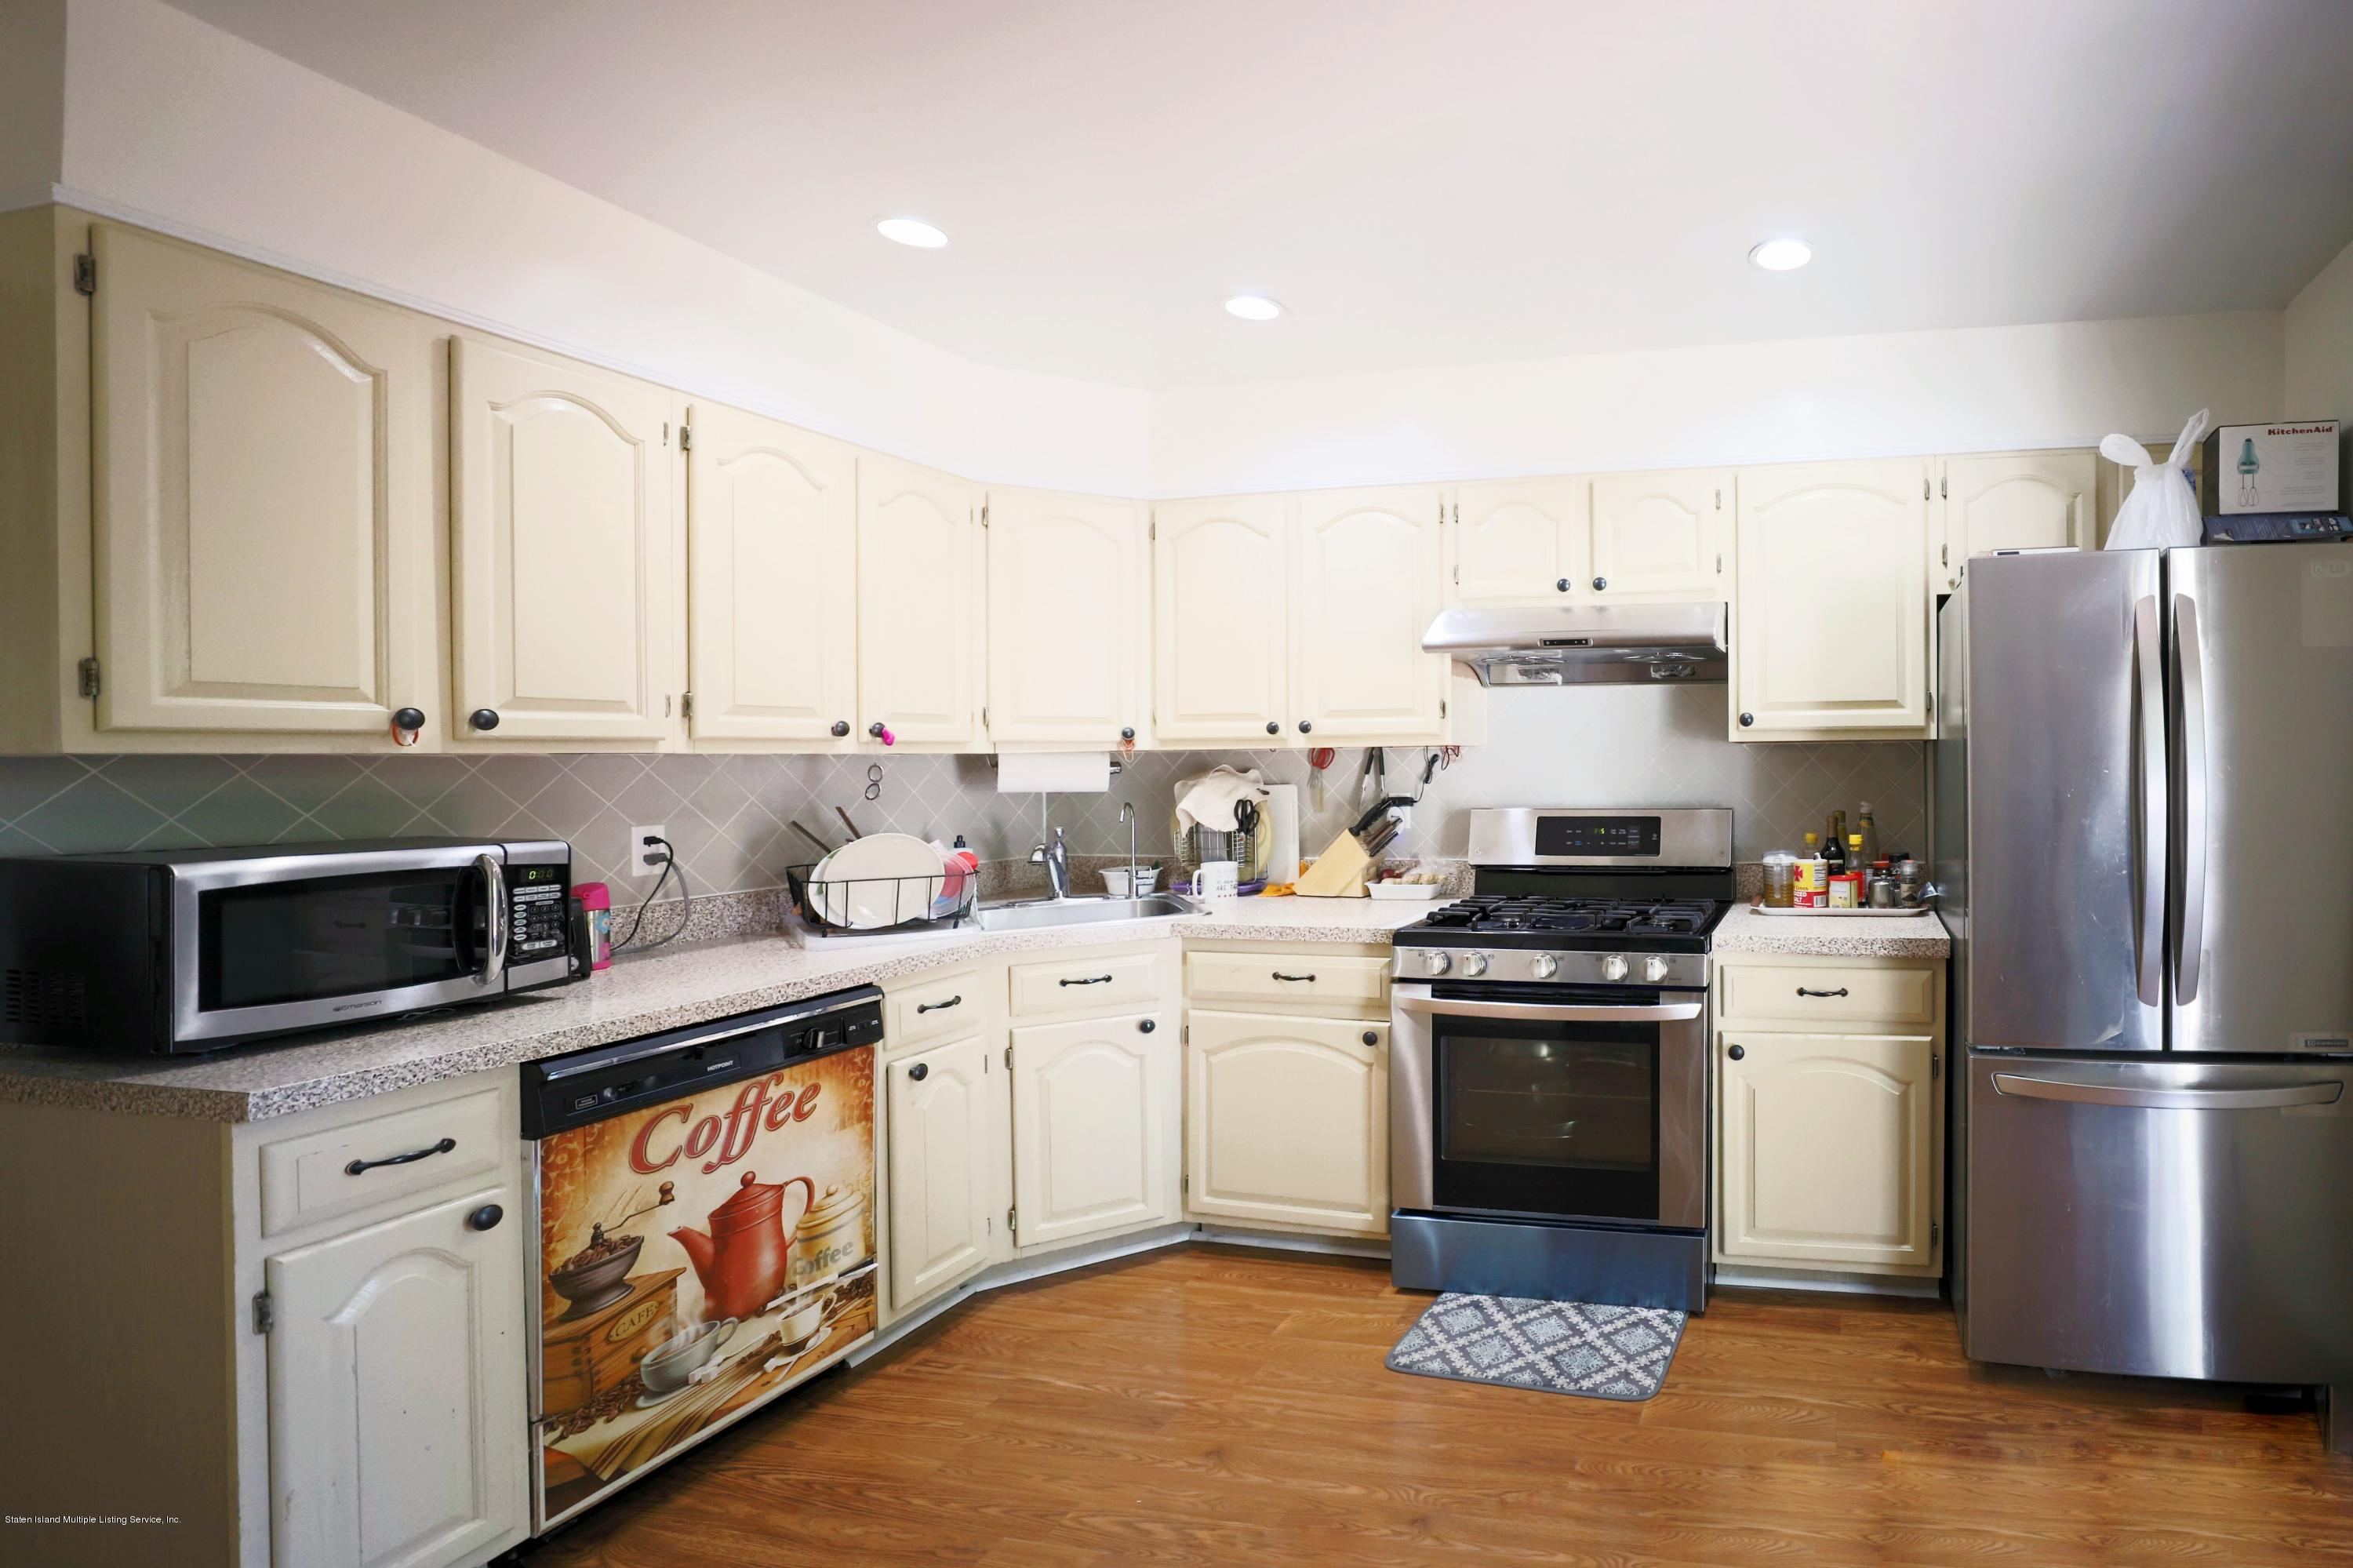 Single Family - Attached 16 Country Lane  Staten Island, NY 10312, MLS-1129780-9